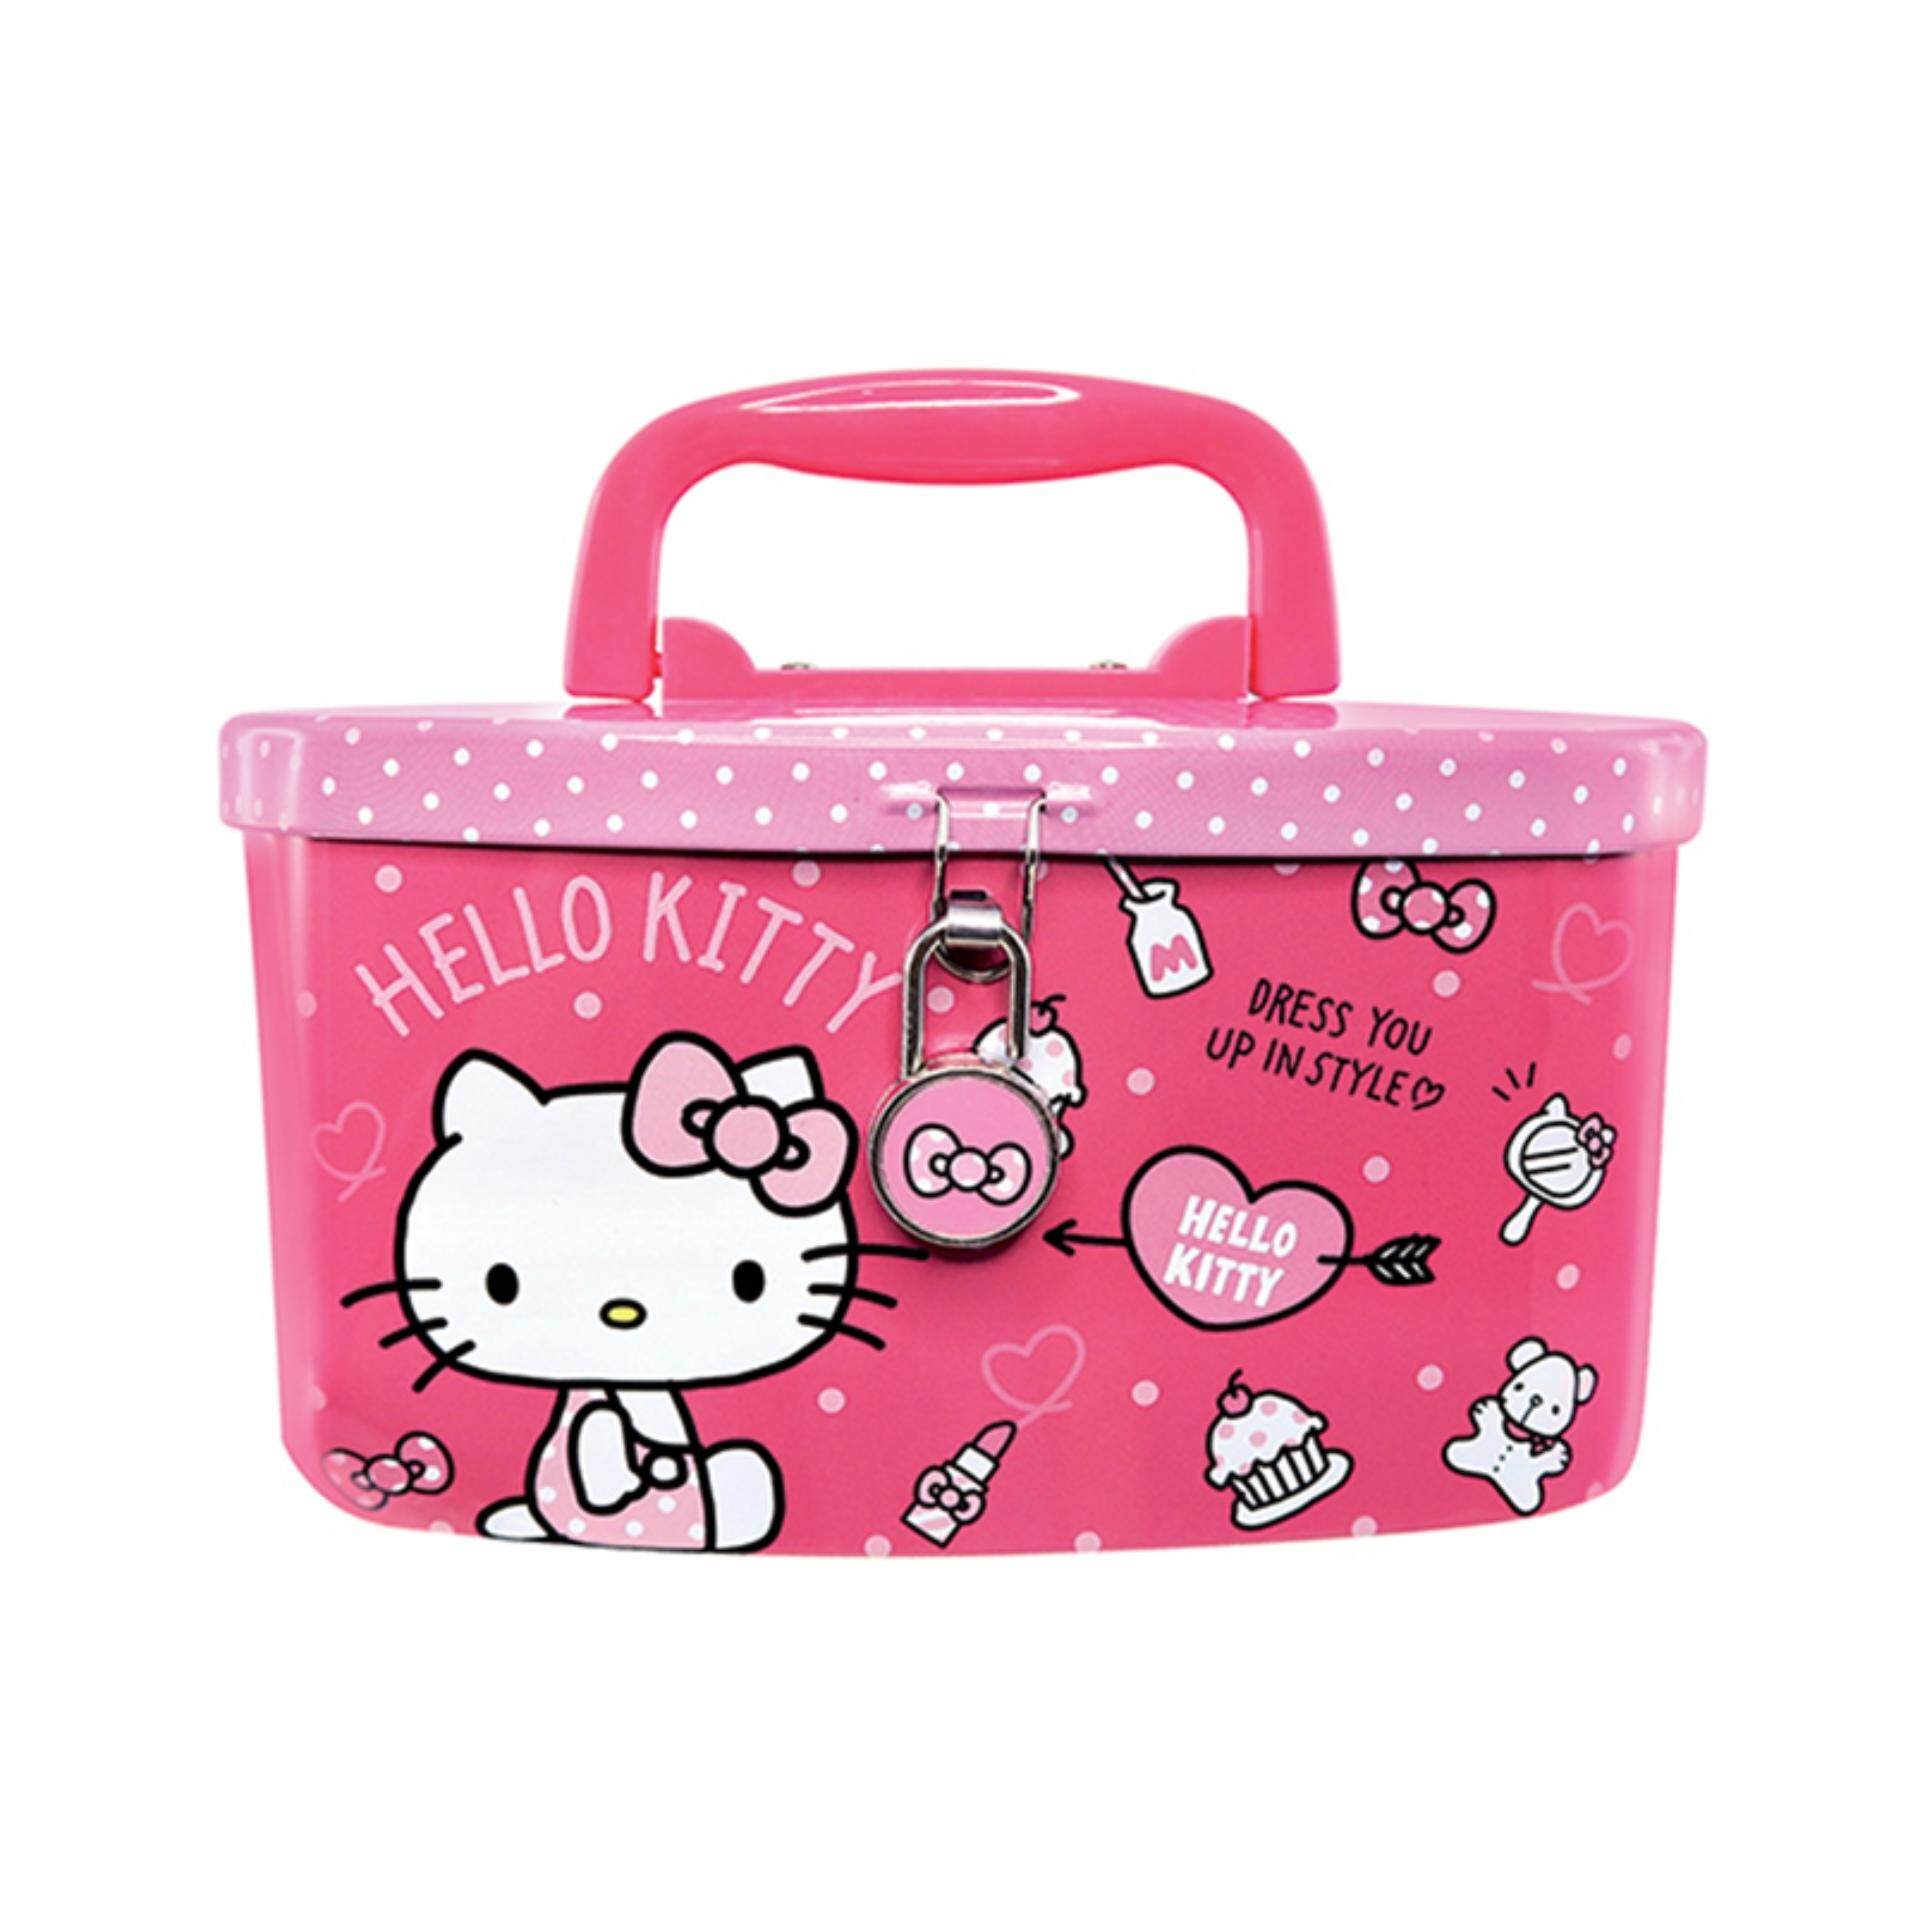 Hello Kitty Coin Bank With Lock - Pink Colour